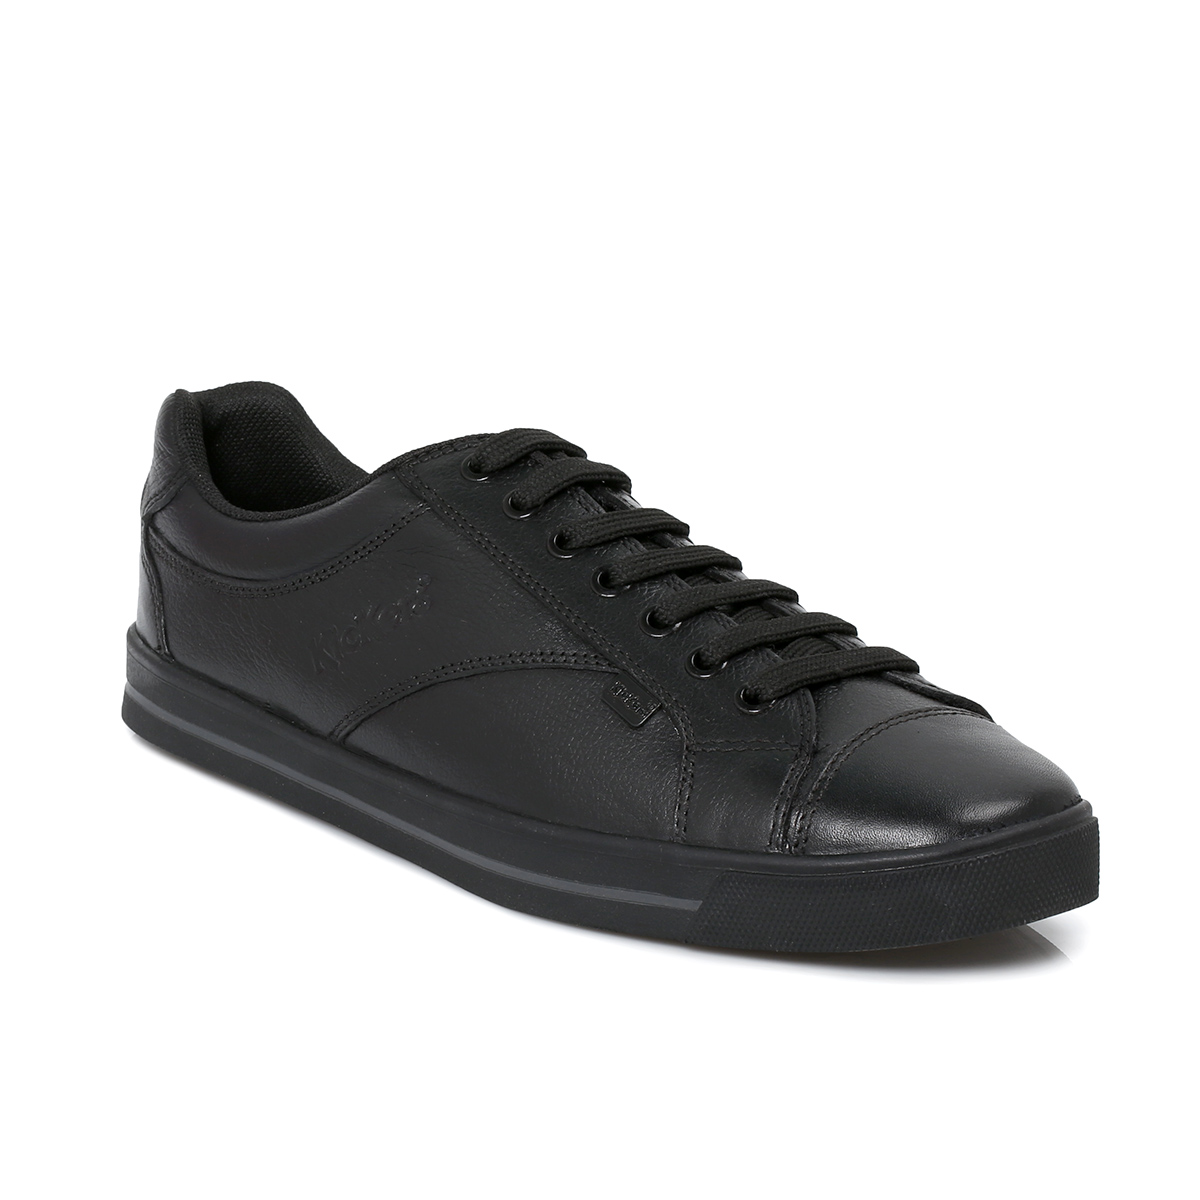 Airwalk Black Leather Shoes